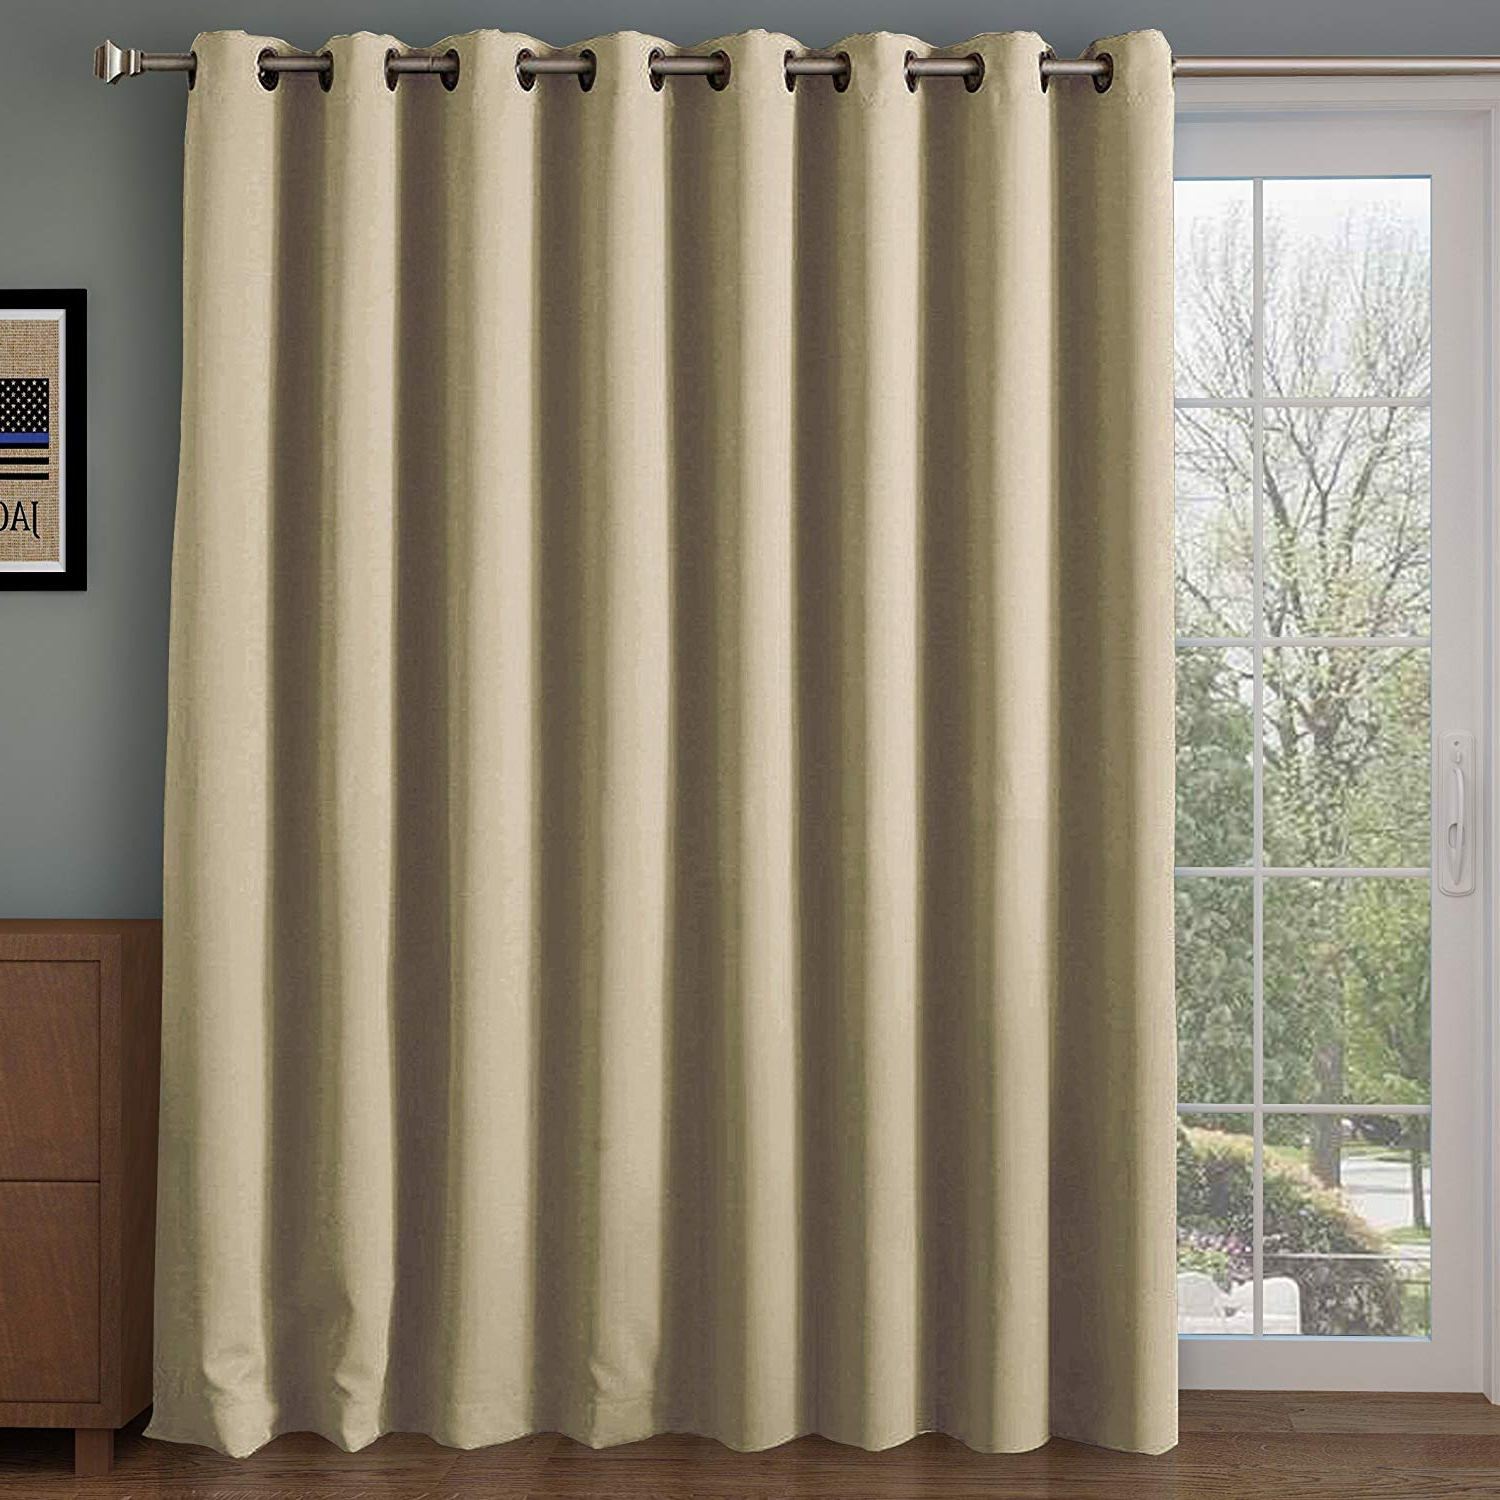 Newest Rose Home Fashion Rhf Wide Thermal Blackout Patio Door Curtain, Sliding Door Curtains,thermal Curtains,grommet Curtains,extra Wide Curtains, Curtains Pertaining To Grommet Blackout Patio Door Window Curtain Panels (View 1 of 20)